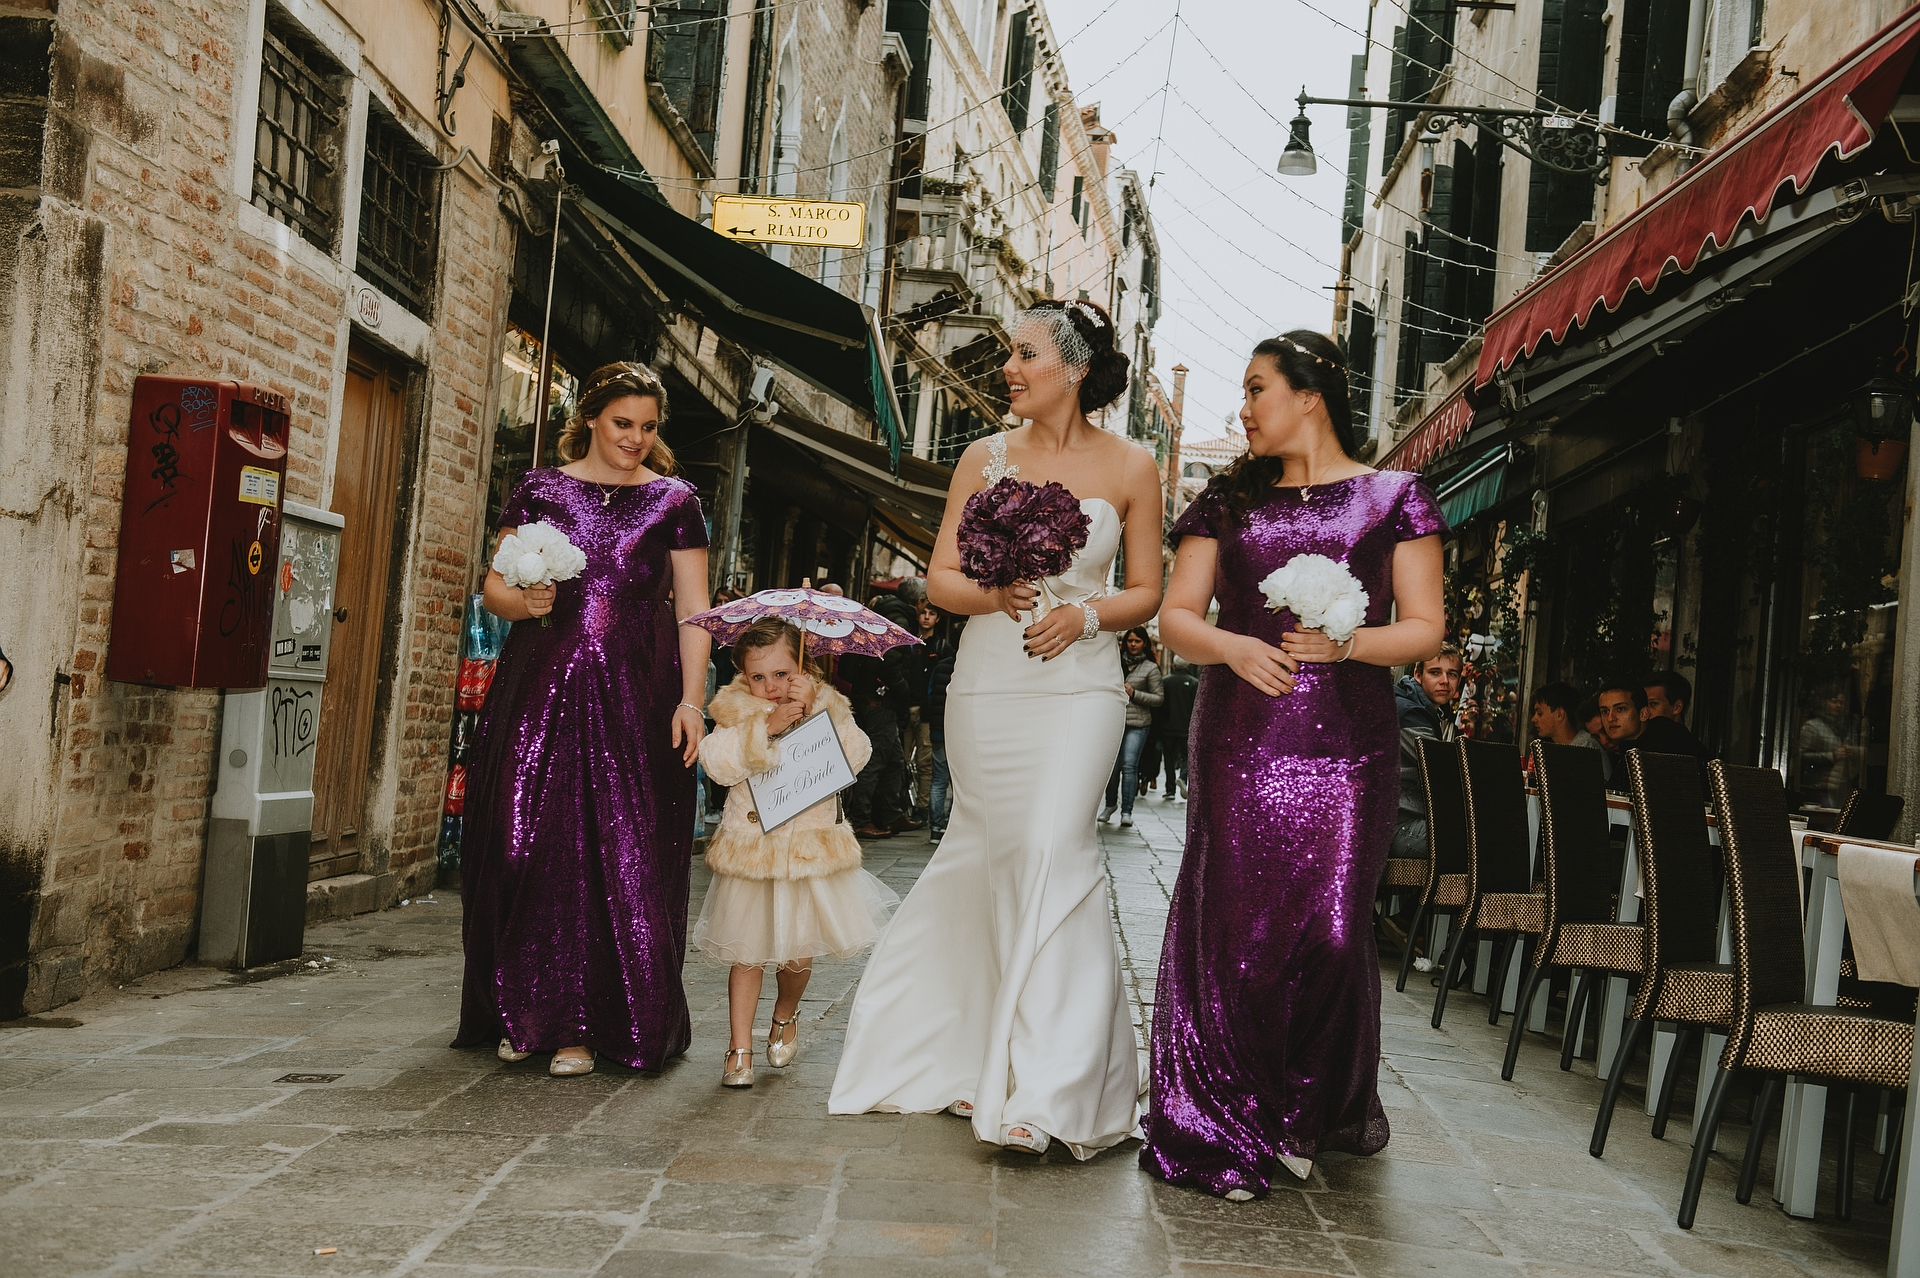 Venice Elopement Photographer for Torcello Island | The future bride, with her bridesmaids, are going to the taxi stop